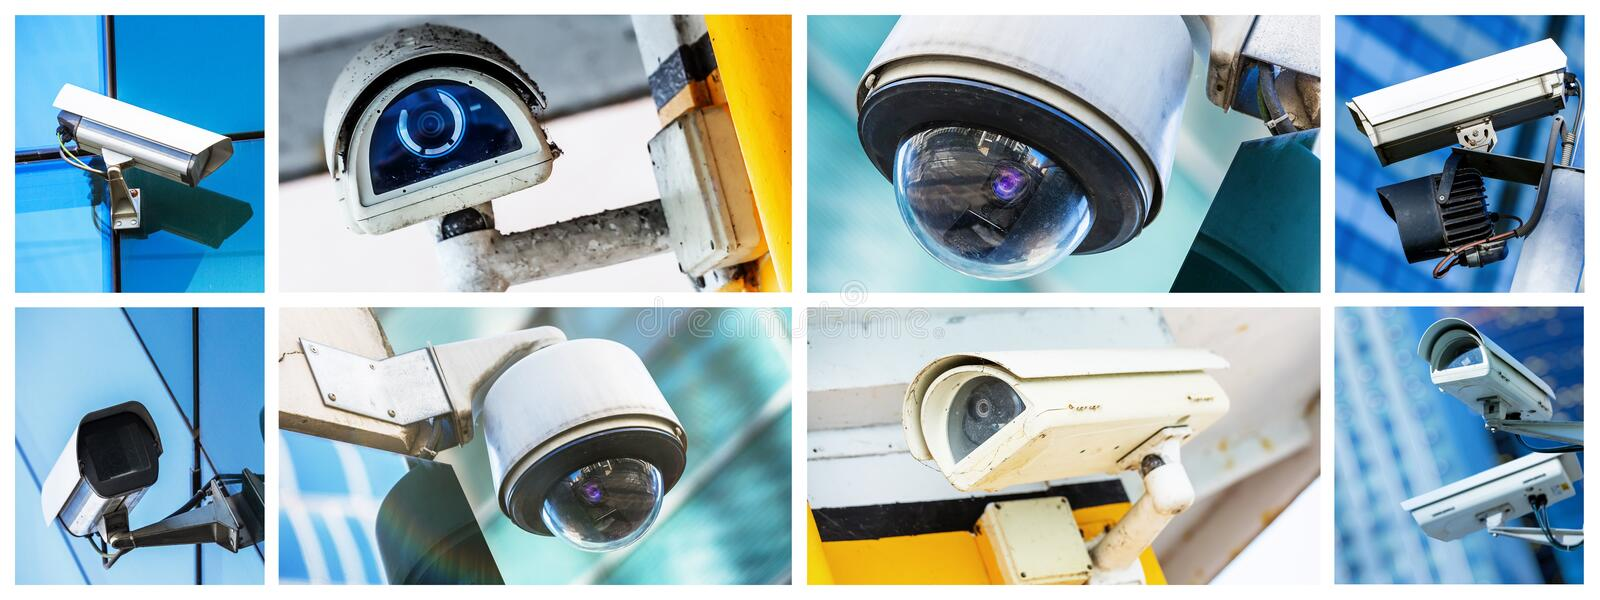 Panoramic collage of security CCTV camera or surveillance system royalty free stock photo